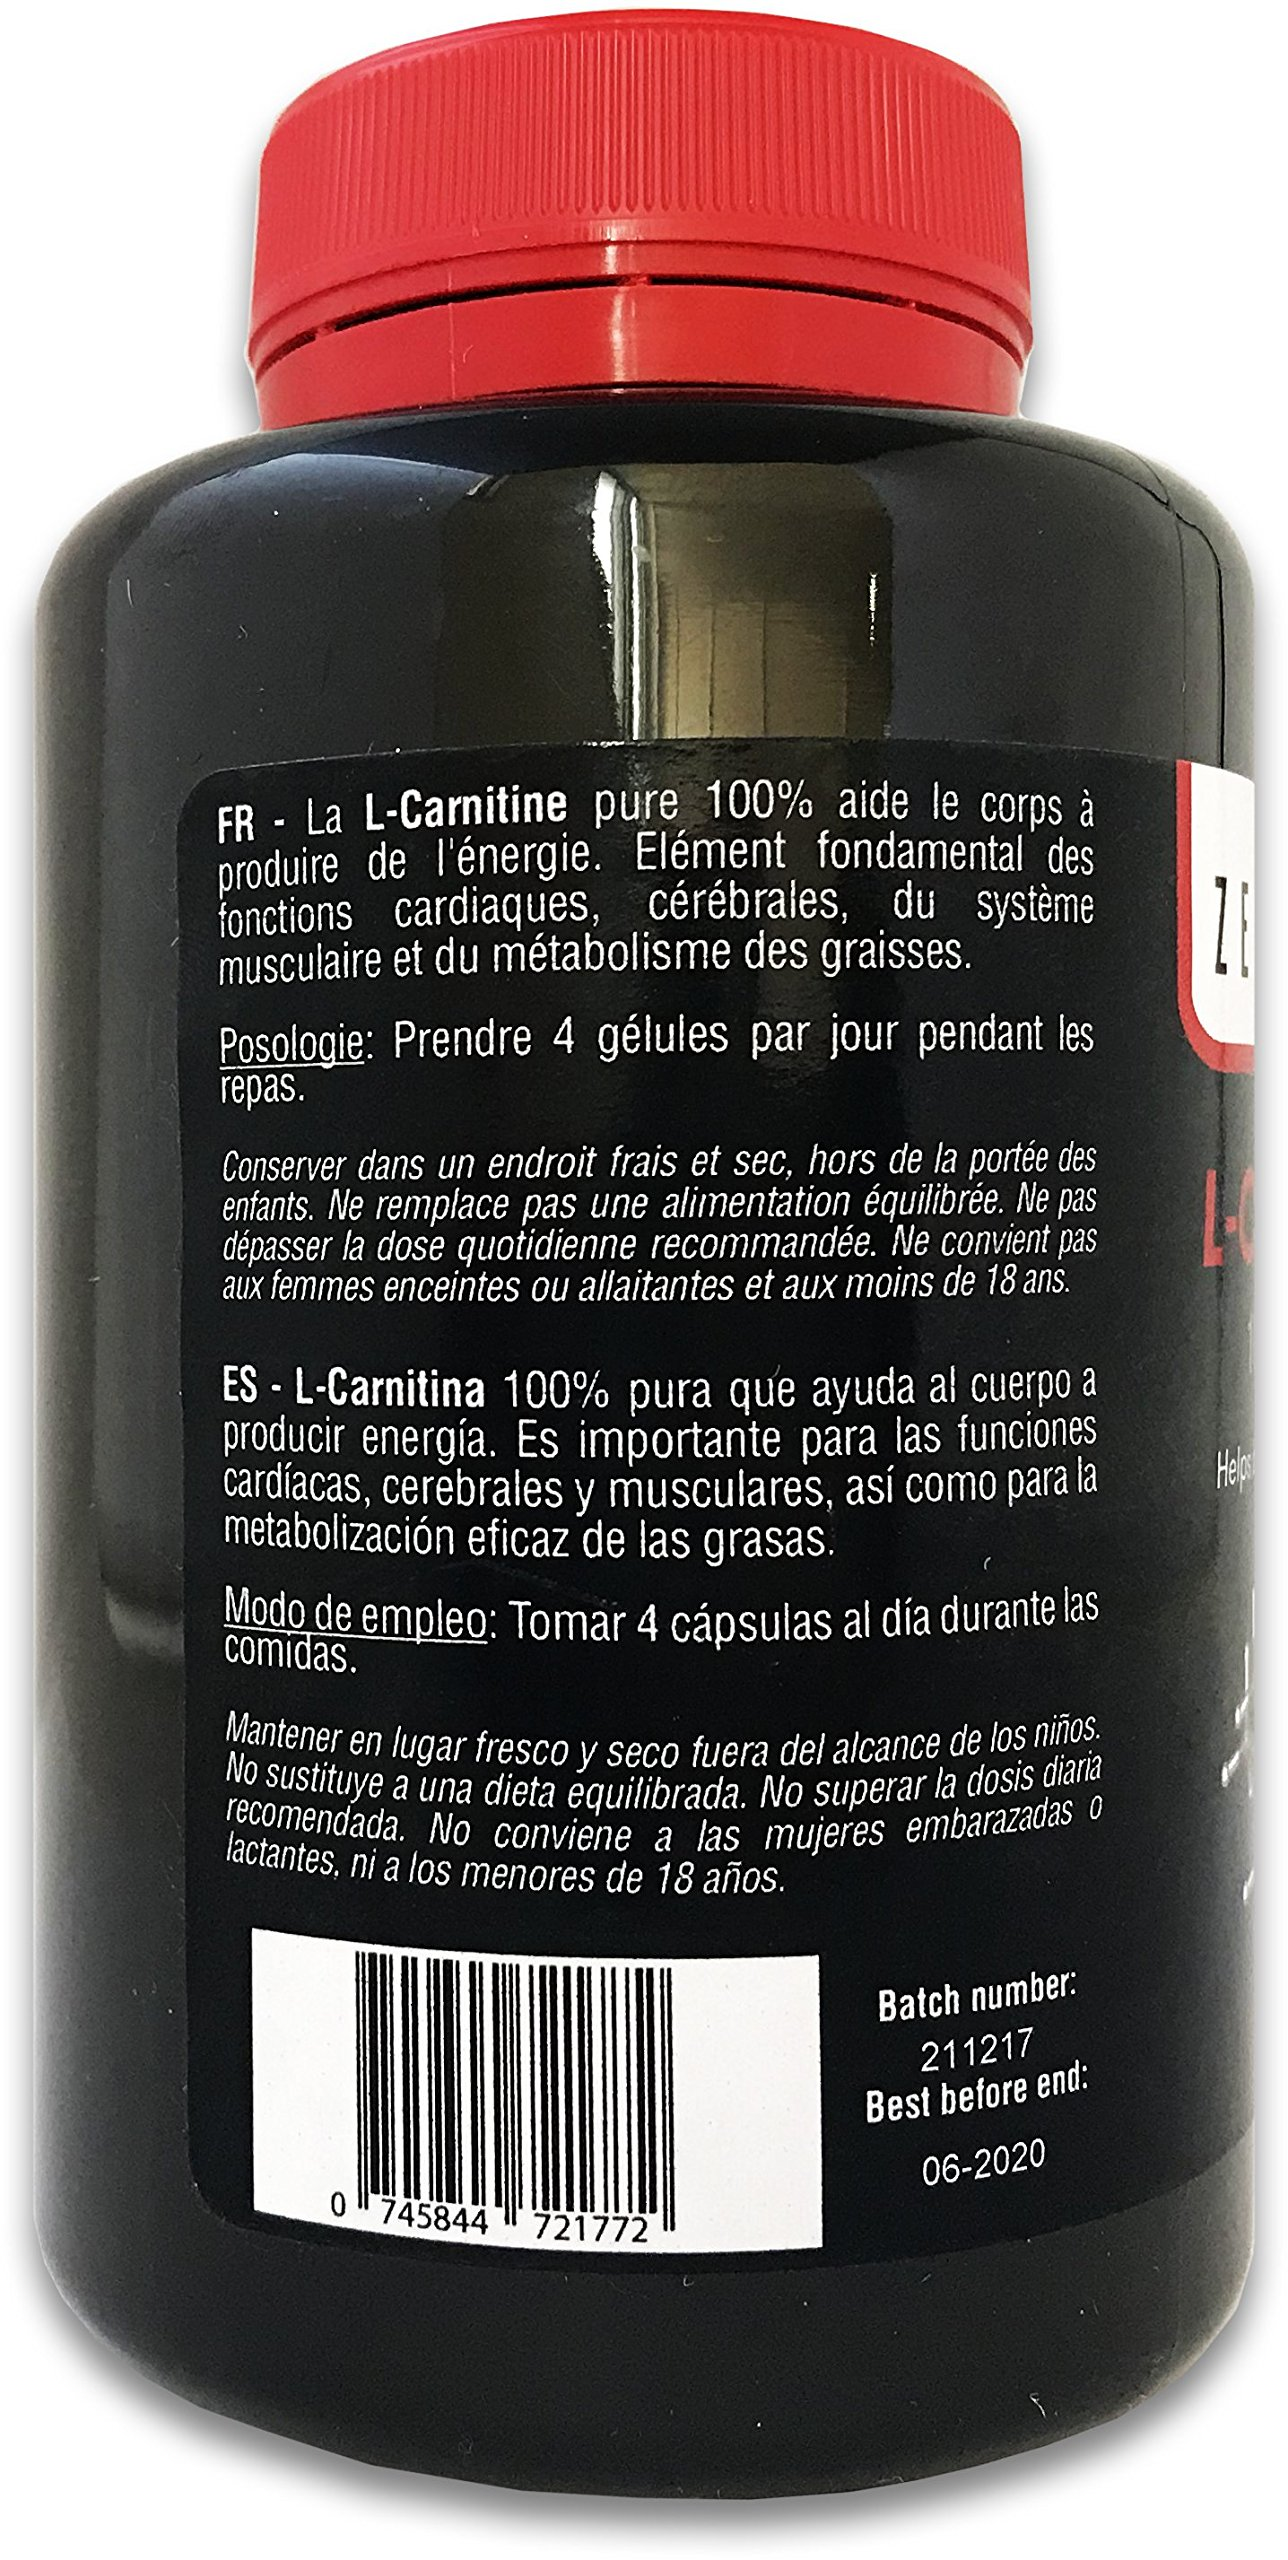 L-Carnitine | 180 Capsules | Improve Sports Performance and The efficient metabolization of Fat | Vegan, Gluten Free